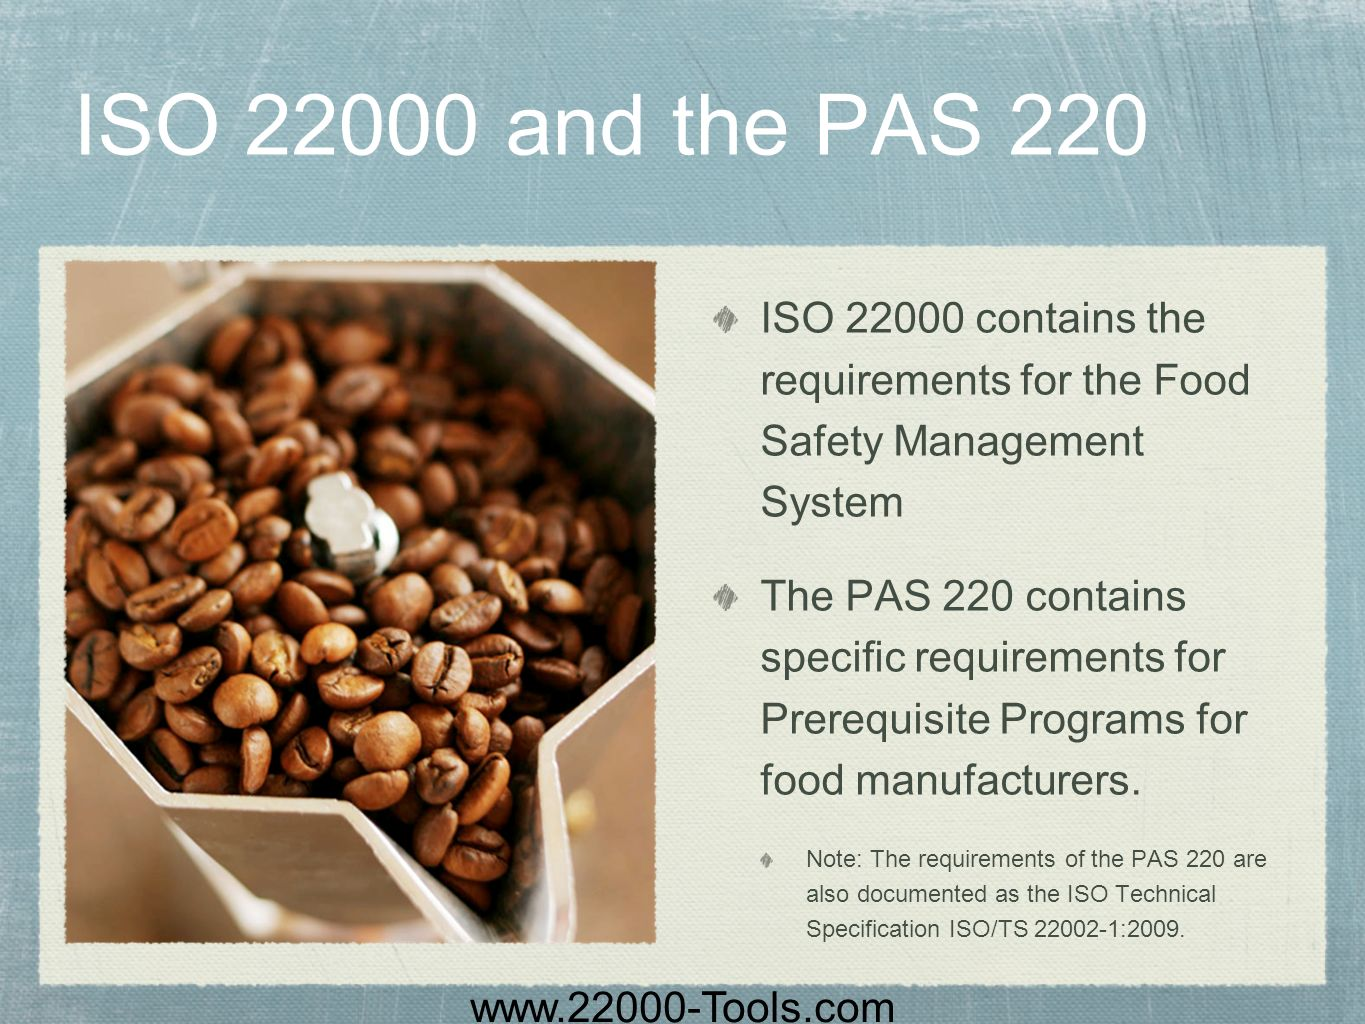 ISO 22000 and the PAS 220 ISO 22000 contains the requirements for the Food Safety Management System.